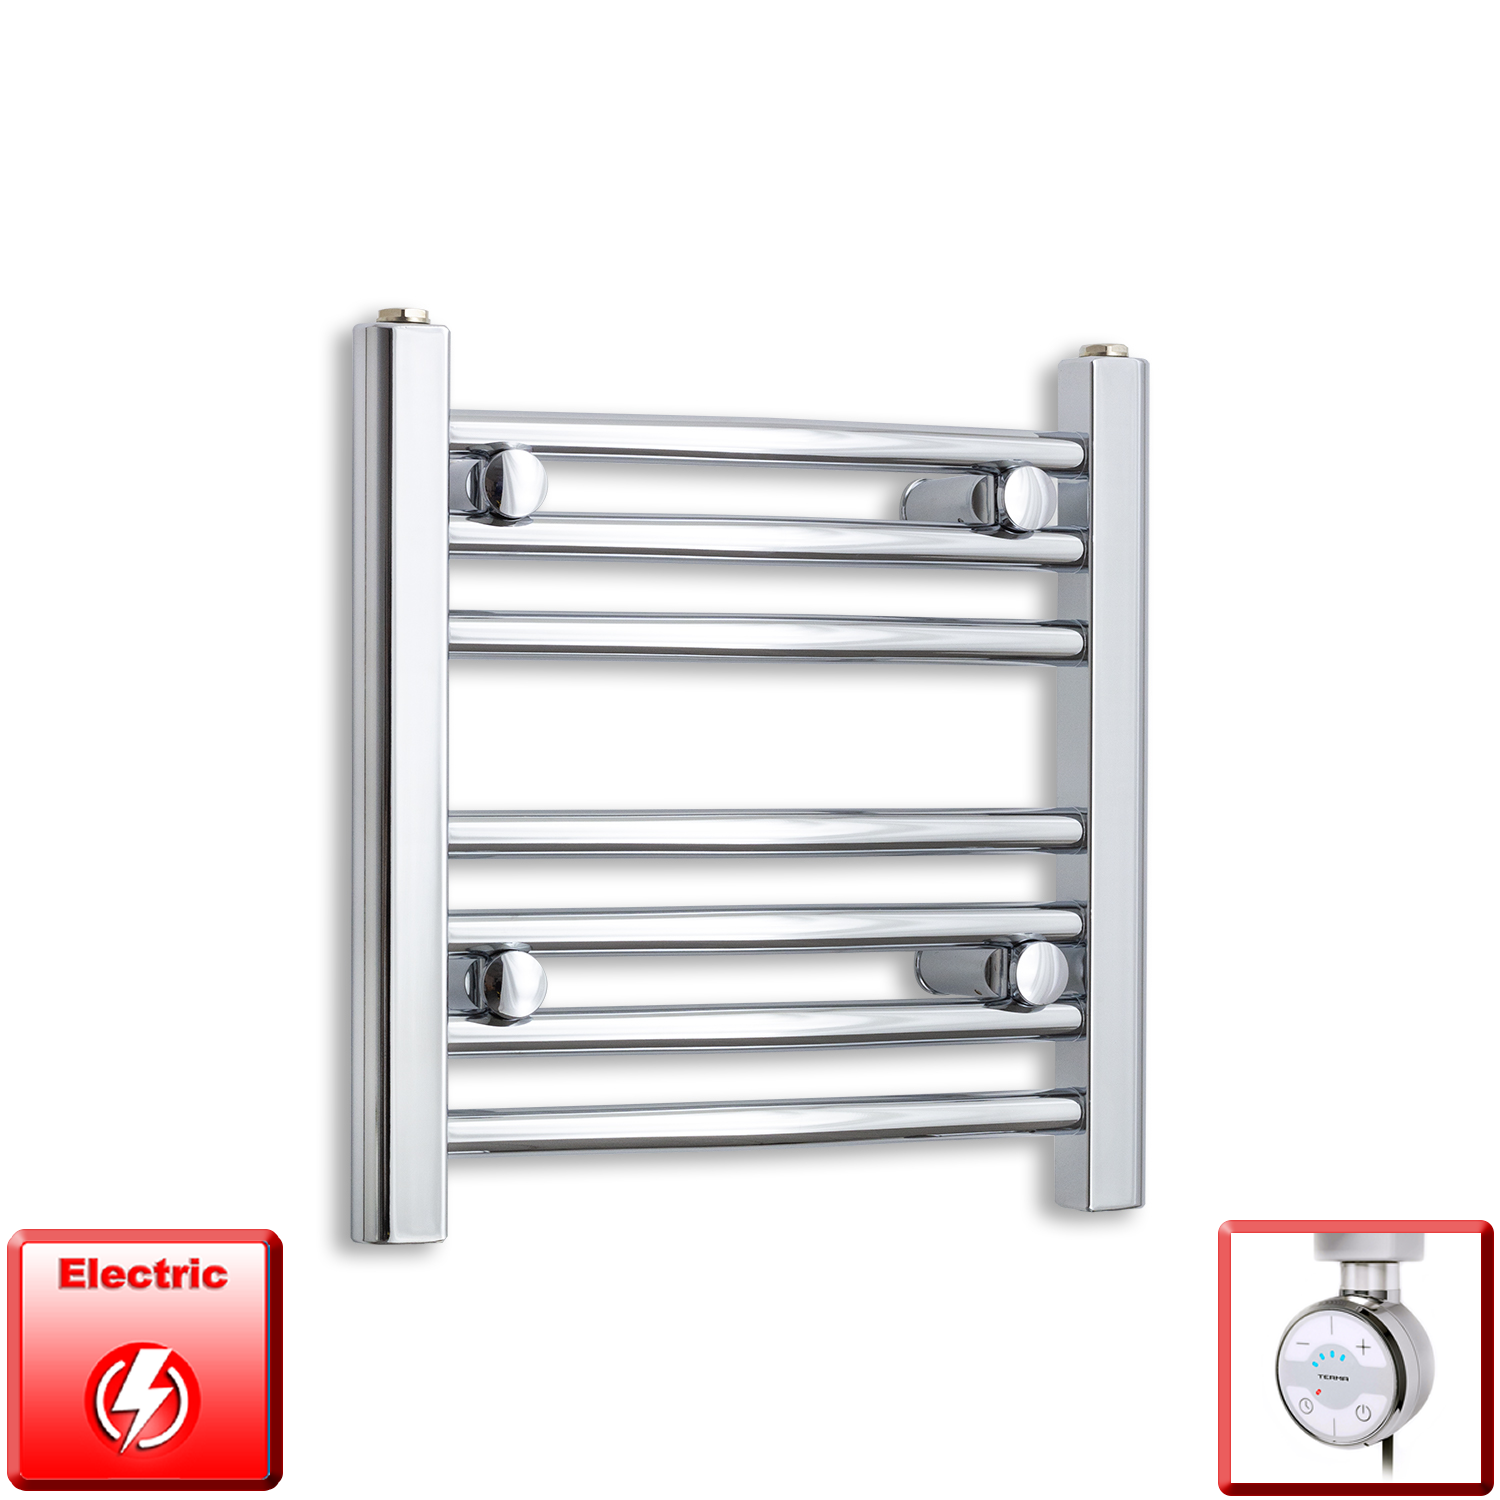 500mm Wide 400mm High Flat Or Curved Chrome Pre-Filled Electric Heated Towel Rail Radiator HTR,MOA Thermostatic Element / Straight